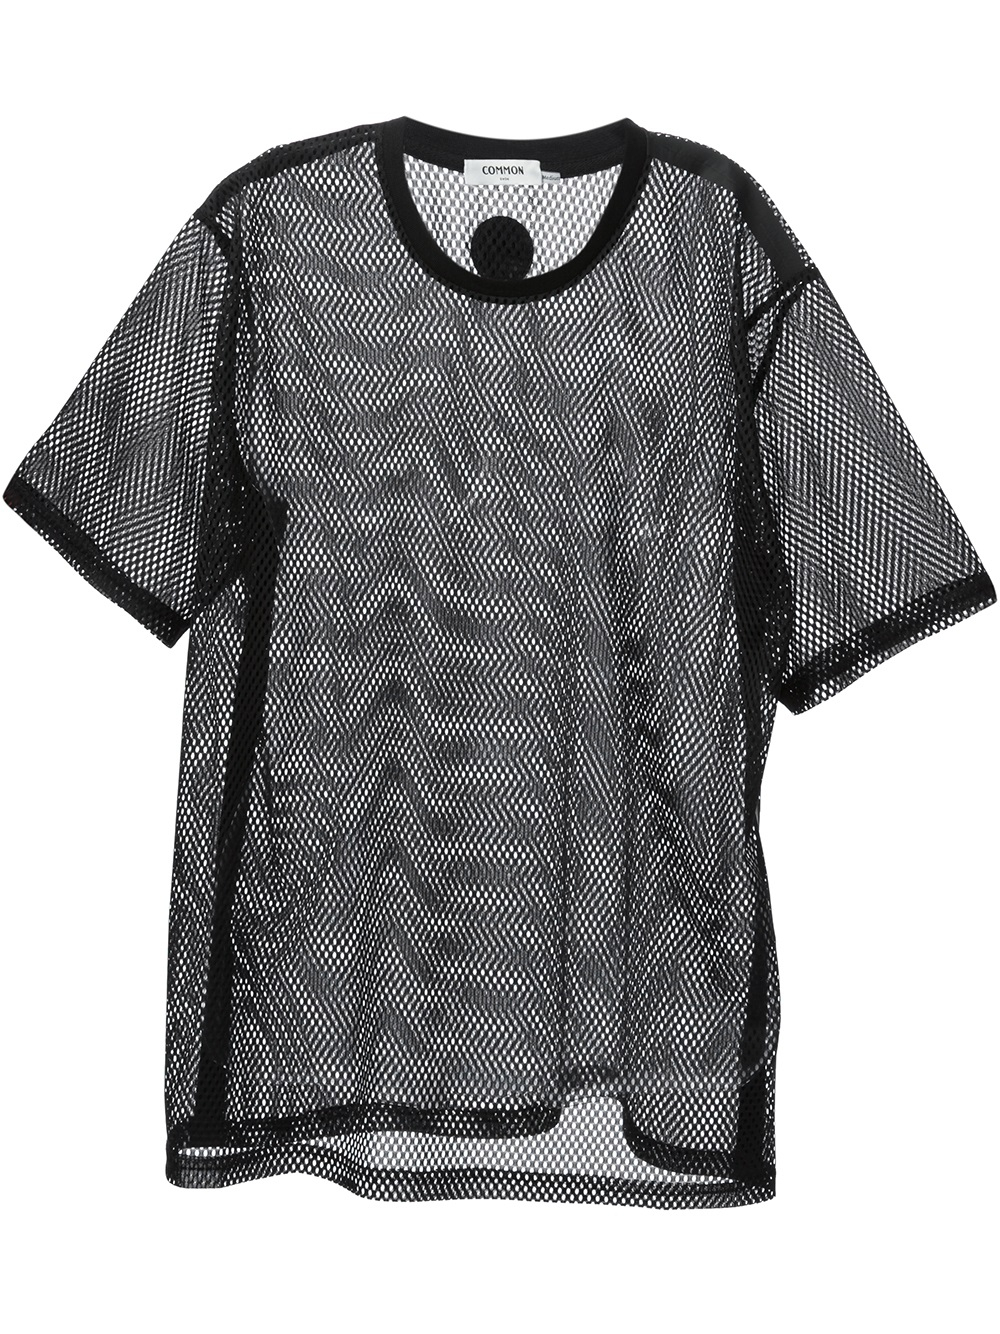 Find great deals on eBay for mens black mesh shirt. Shop with confidence.